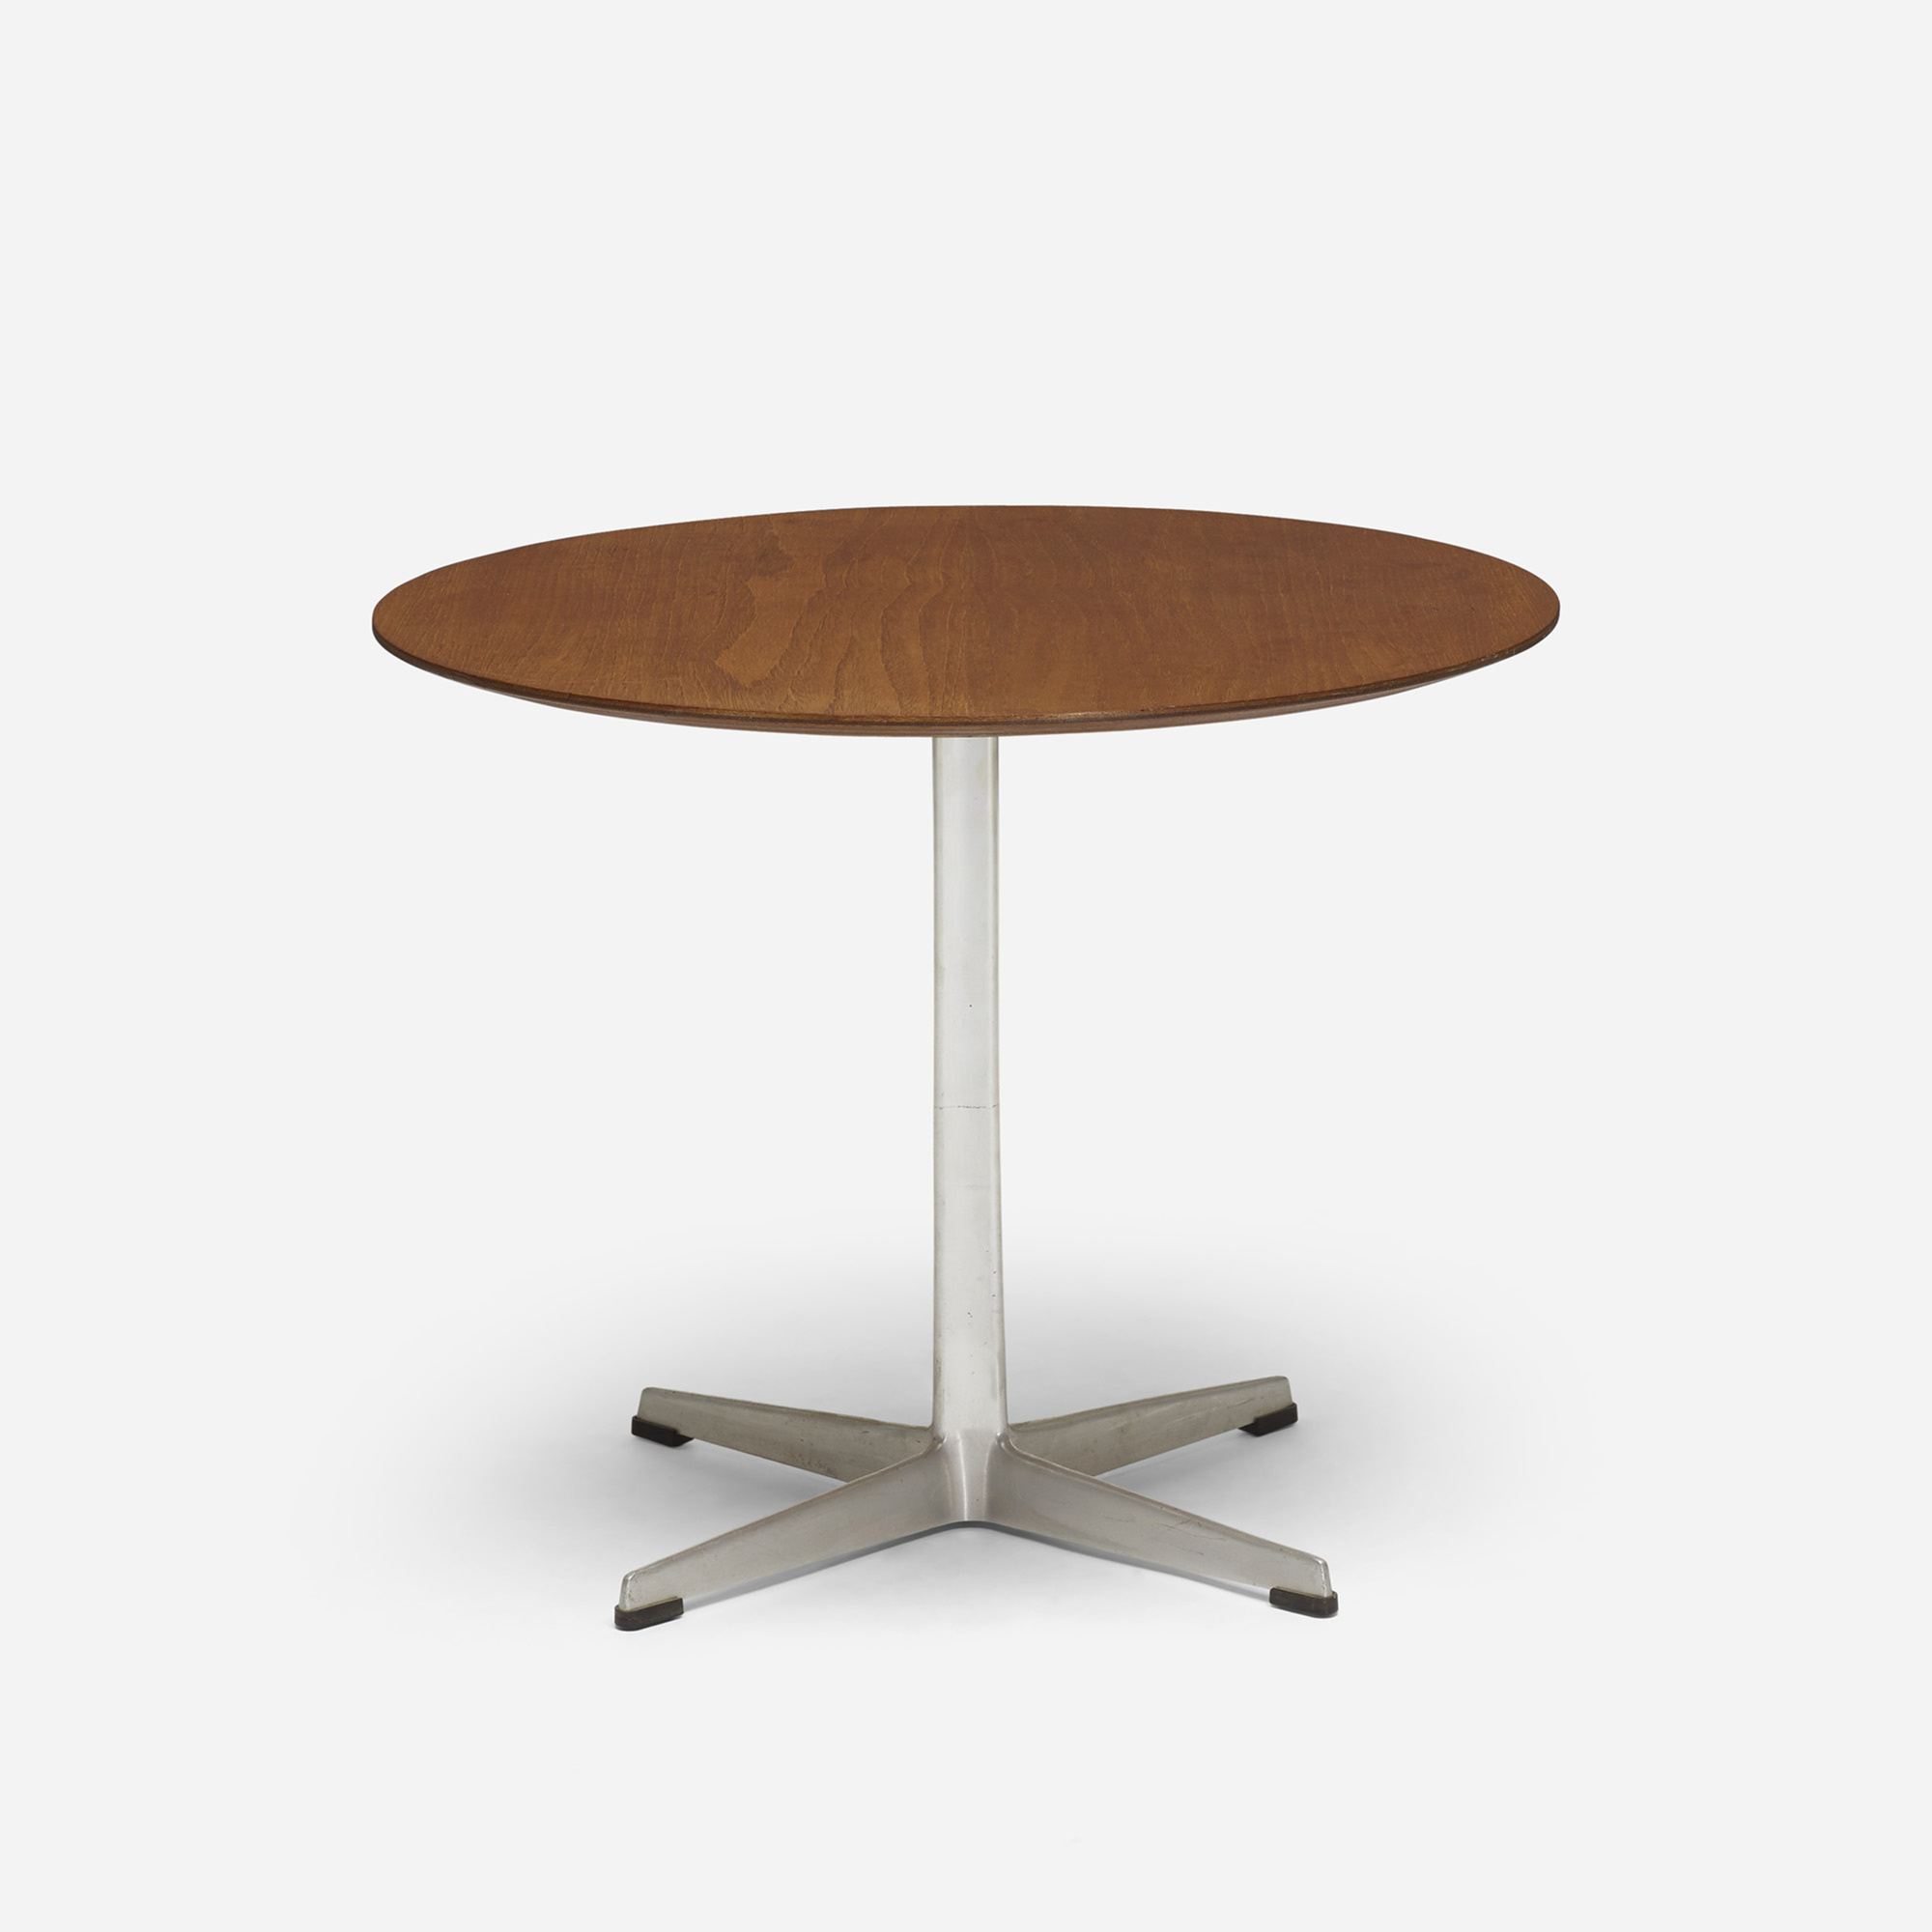 374: Arne Jacobsen / occasional table (1 of 2)